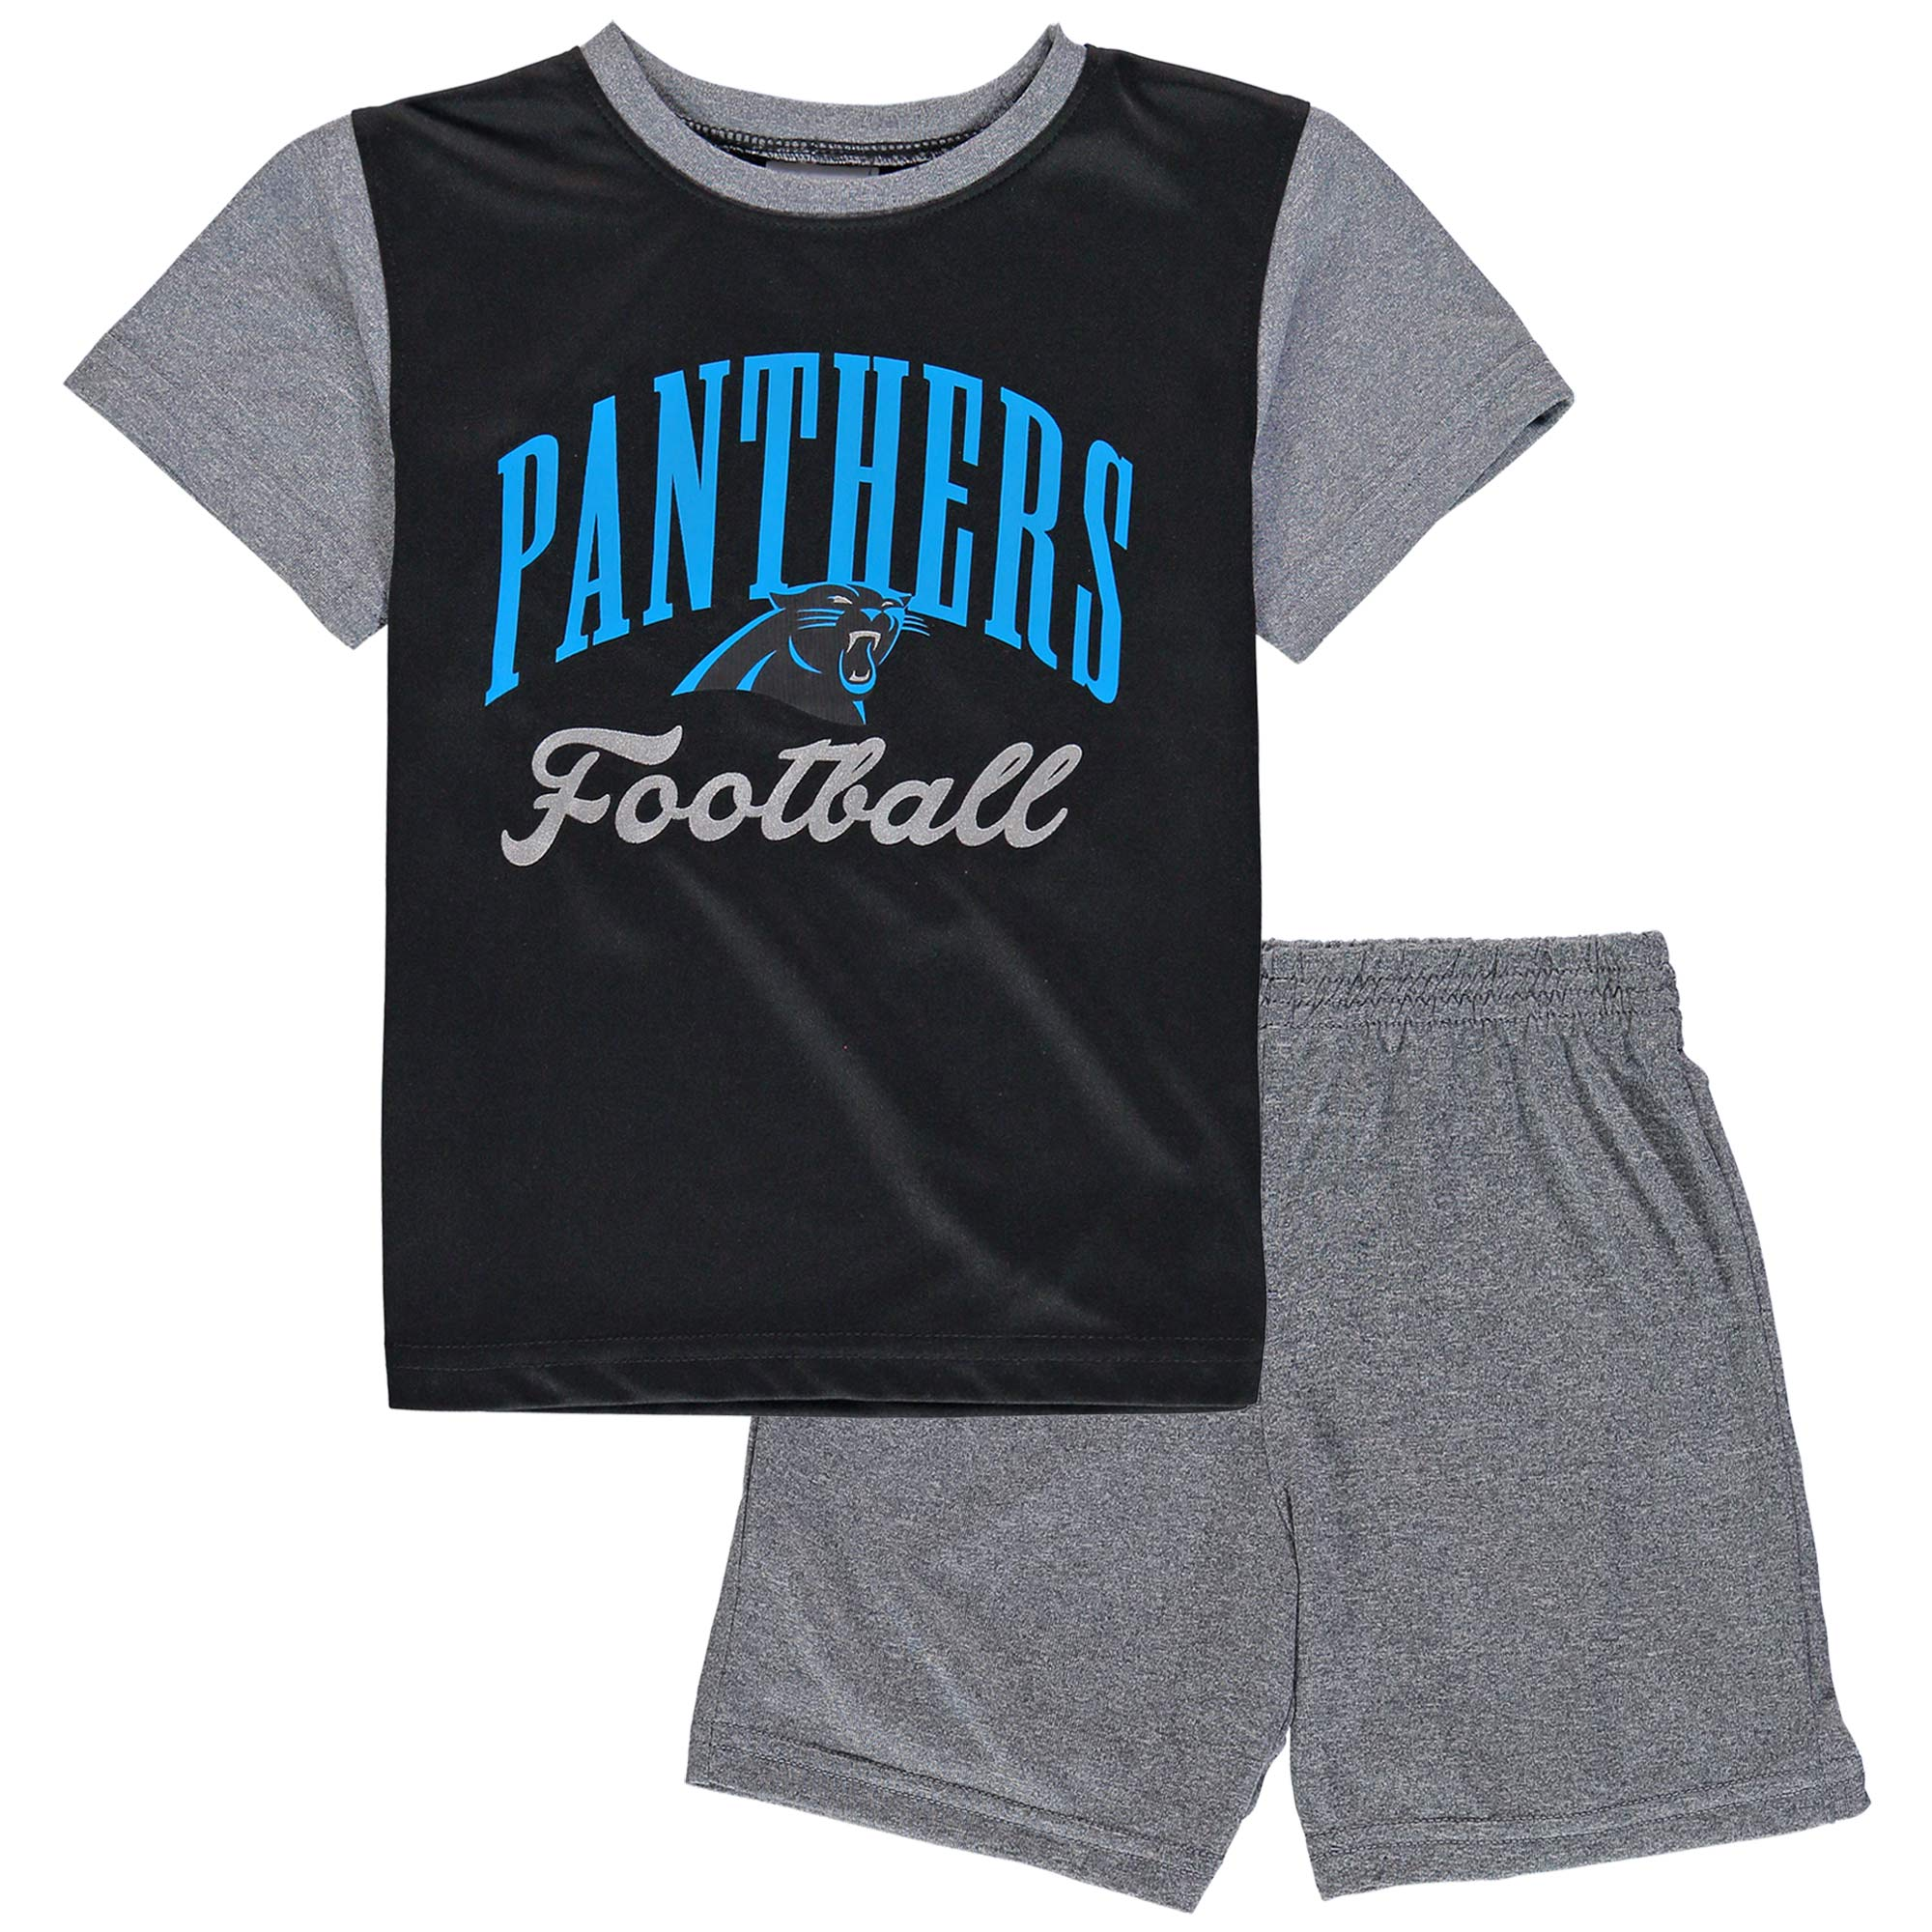 Carolina Panthers NFL Pro Line by Fanatics Branded Toddler Two-Piece Victory Script T-Shirt and Short Set - Black/Heathered Gray